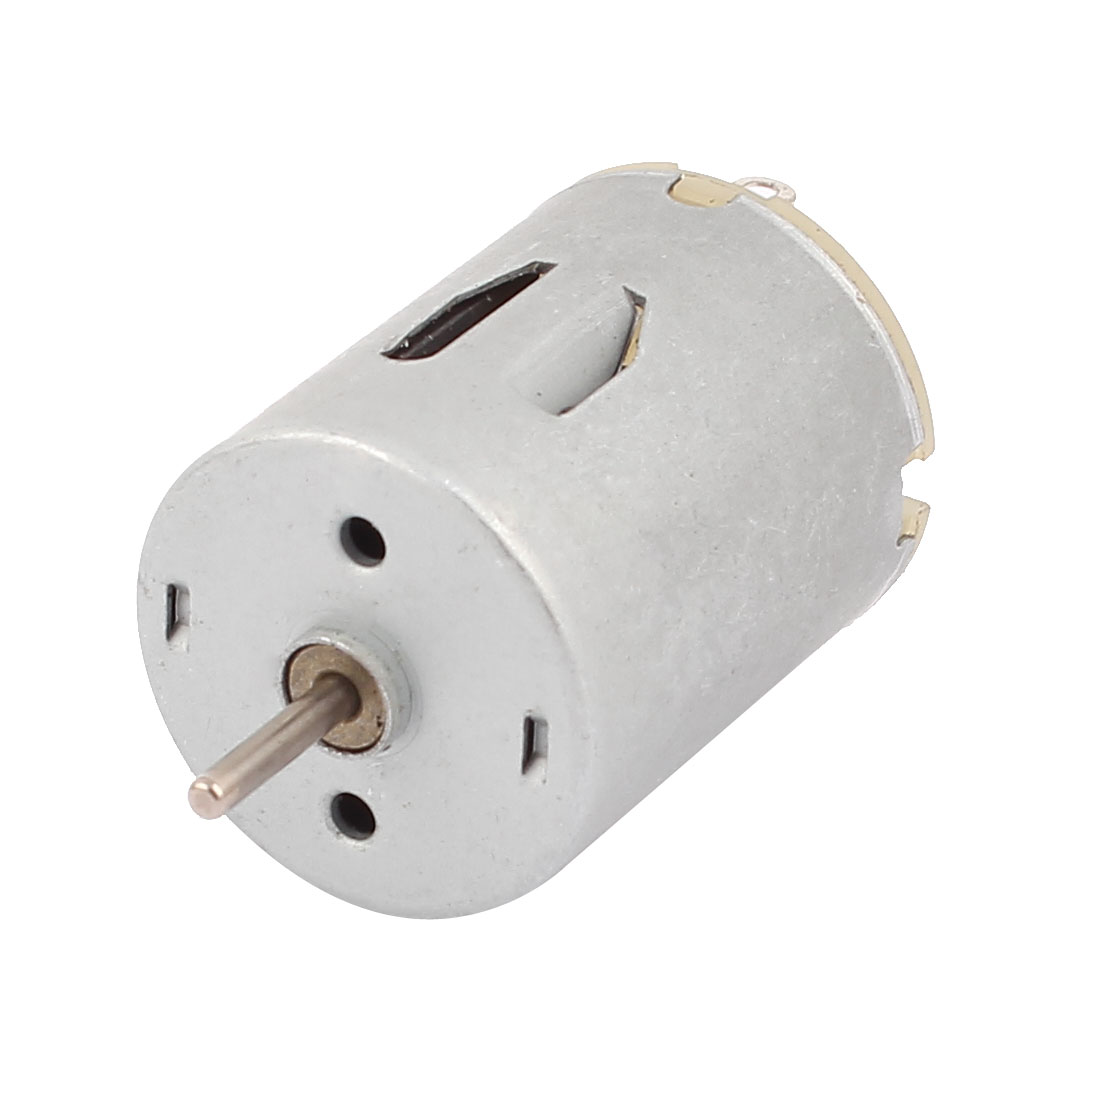 DC 3-9V 14400RPM Output Speed Cylinder Shape Micro Electric Motor for Hair Dryer